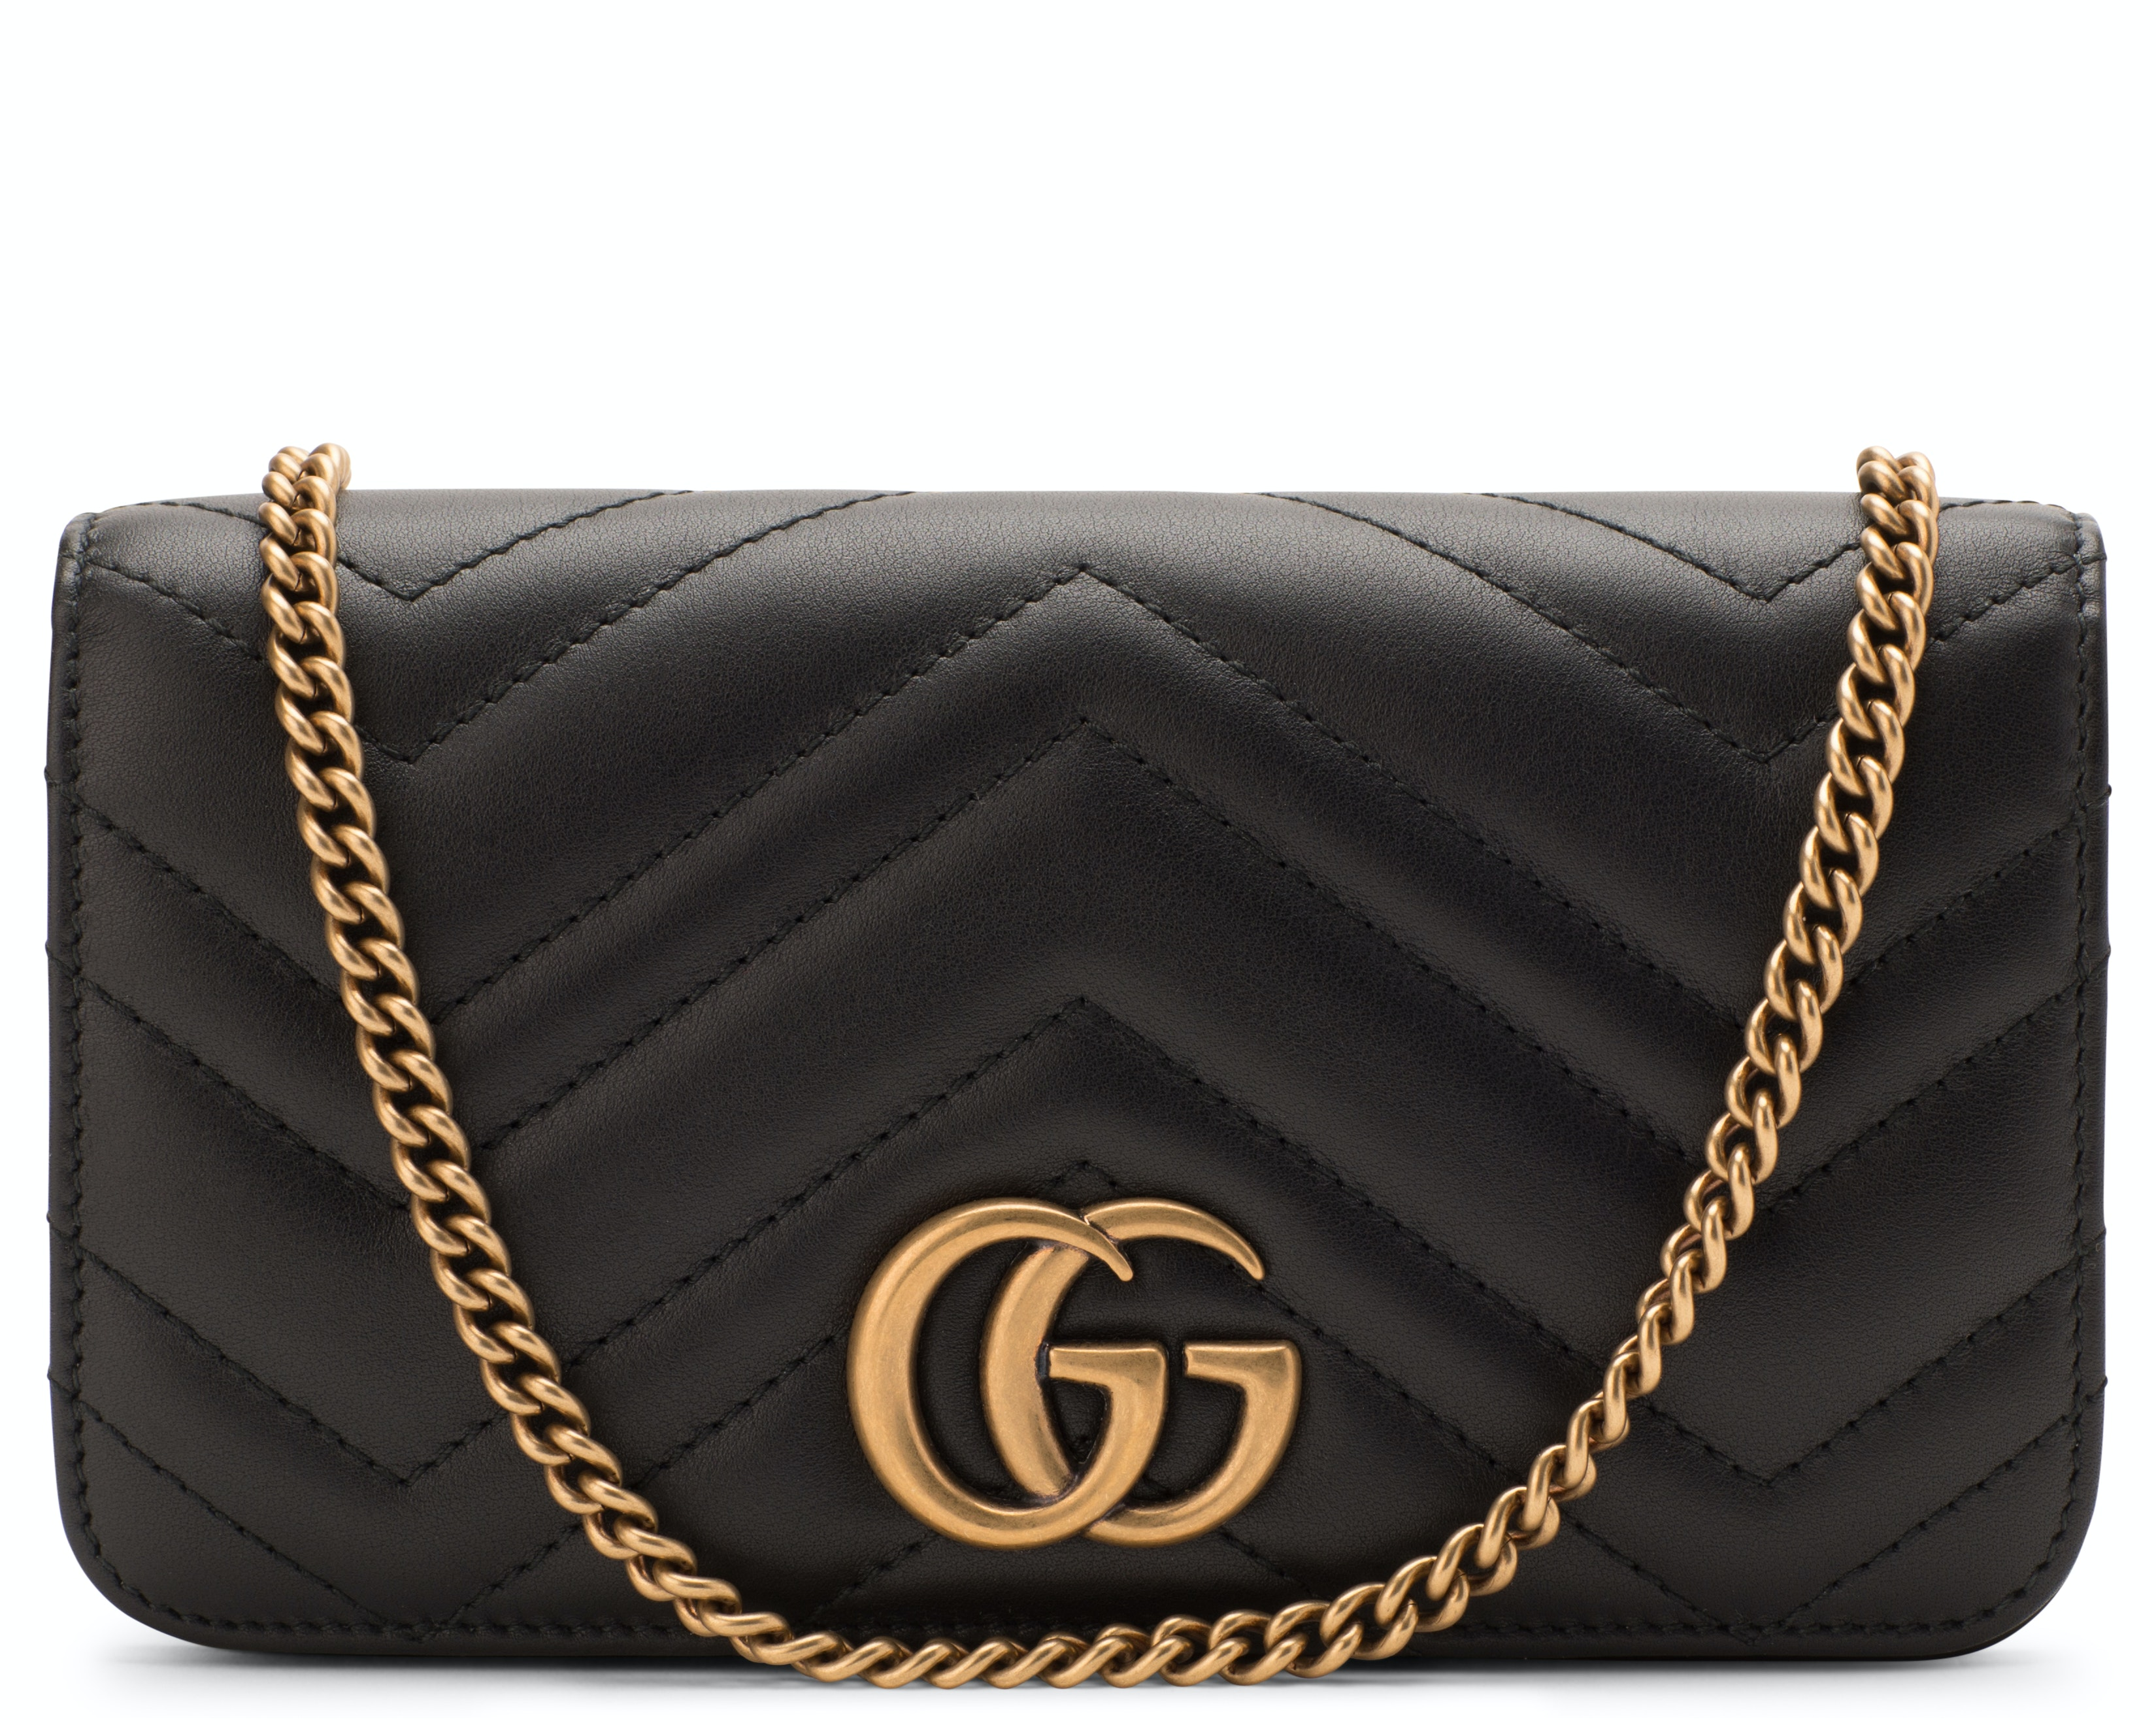 Gucci GG Marmont Crossbody Chain Wallet Matelasse Black